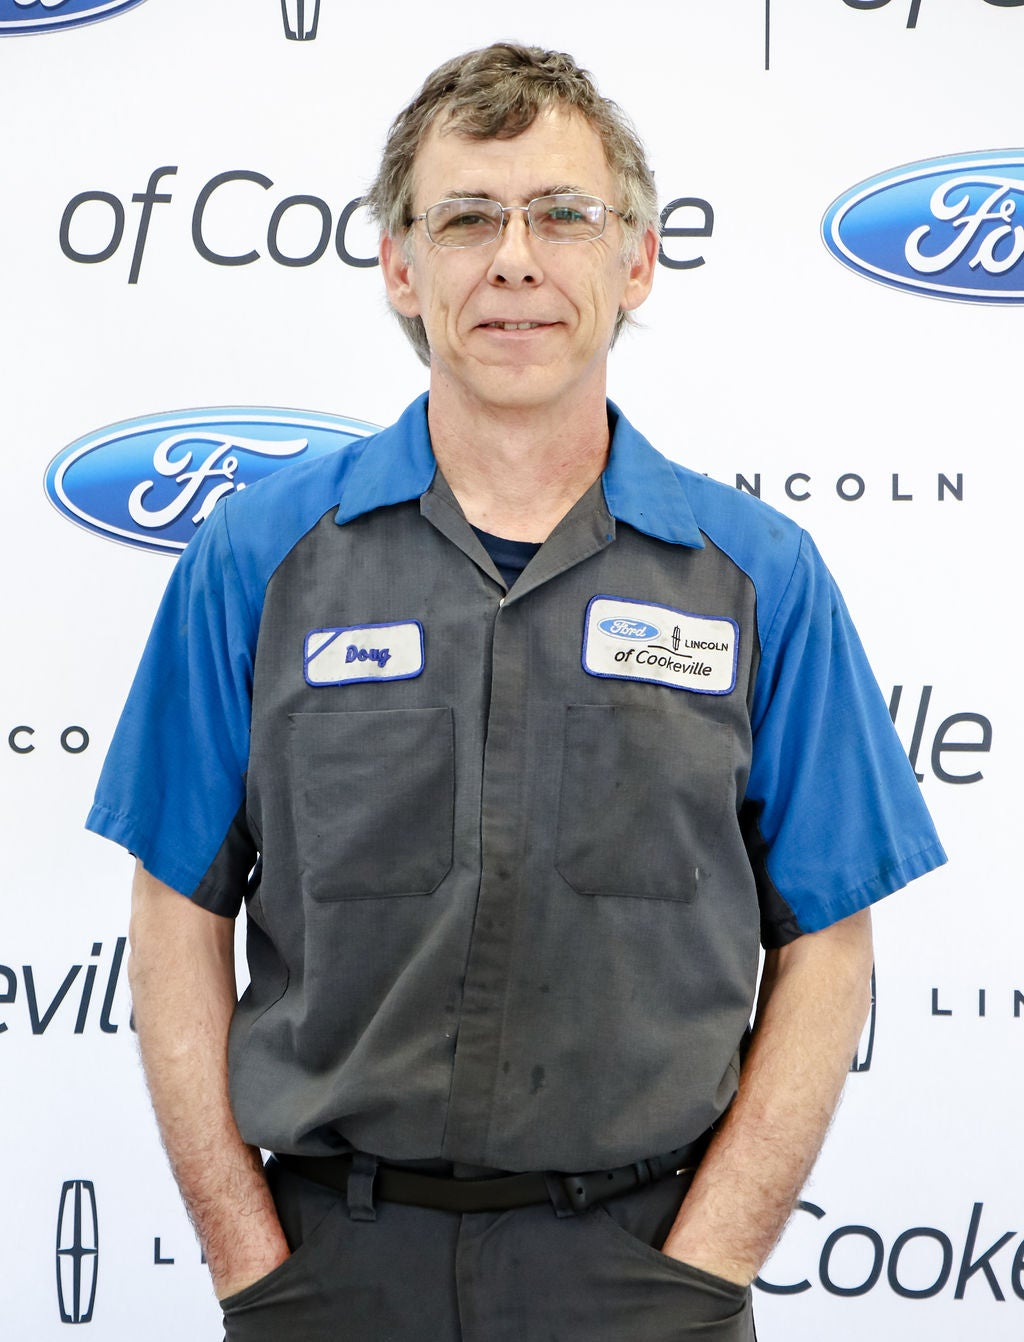 Ford Lincoln of Cookeville Staff | Meet Our Ford Team | cookeville ford